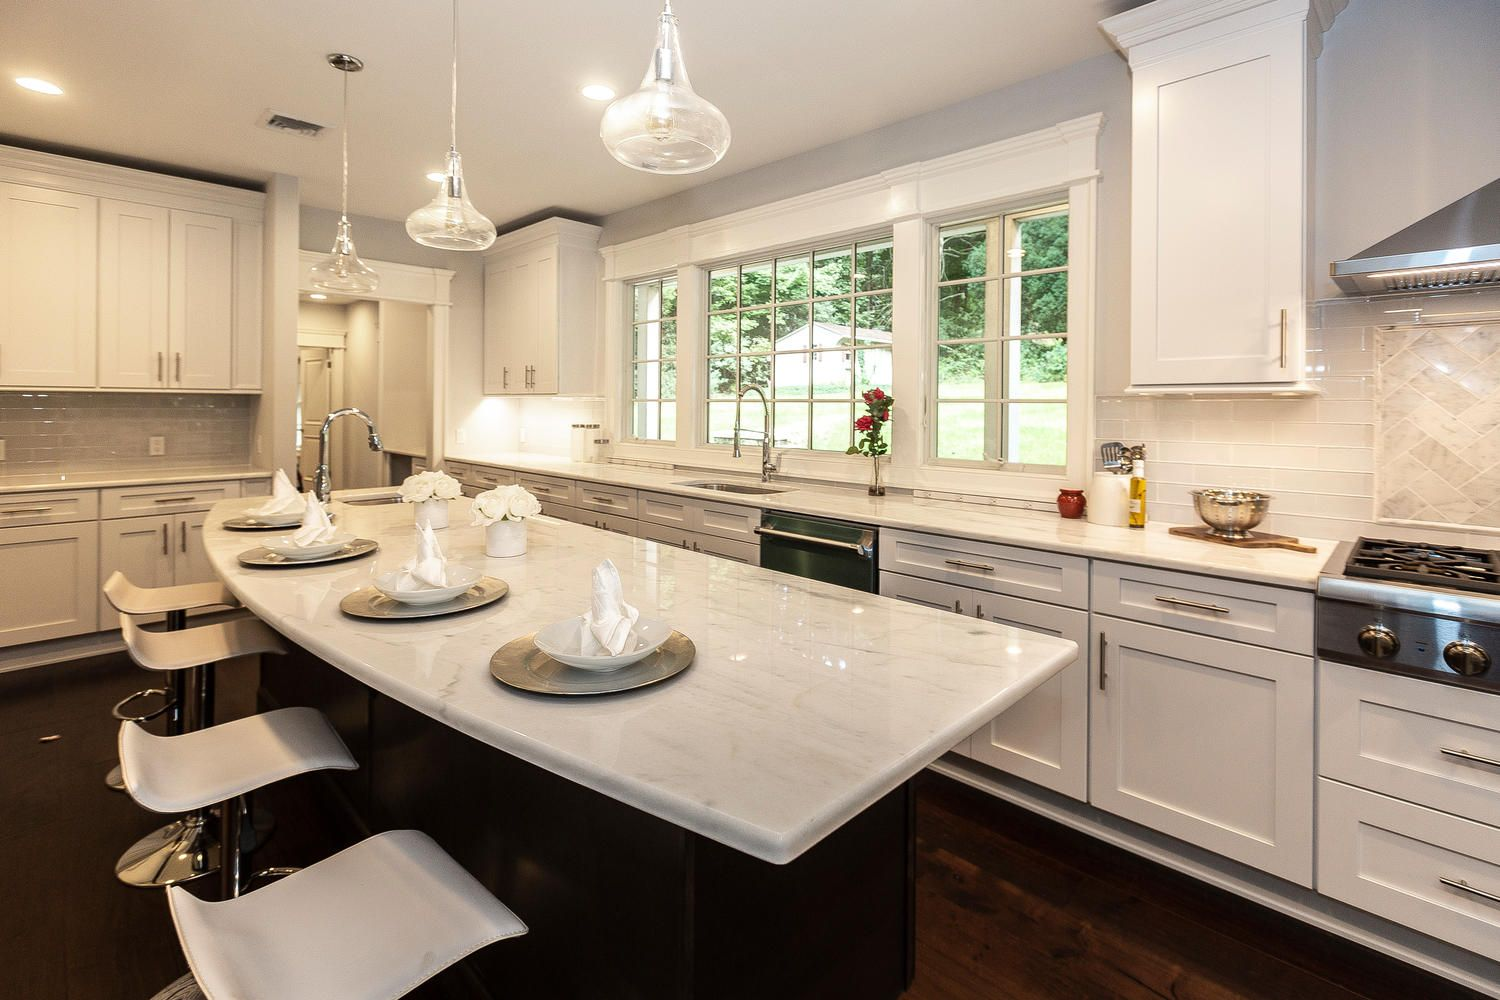 The 3 Layers Of Kitchen Lighting Kitchen Lighting Design Best Kitchen Lighting Kitchen Inspirations